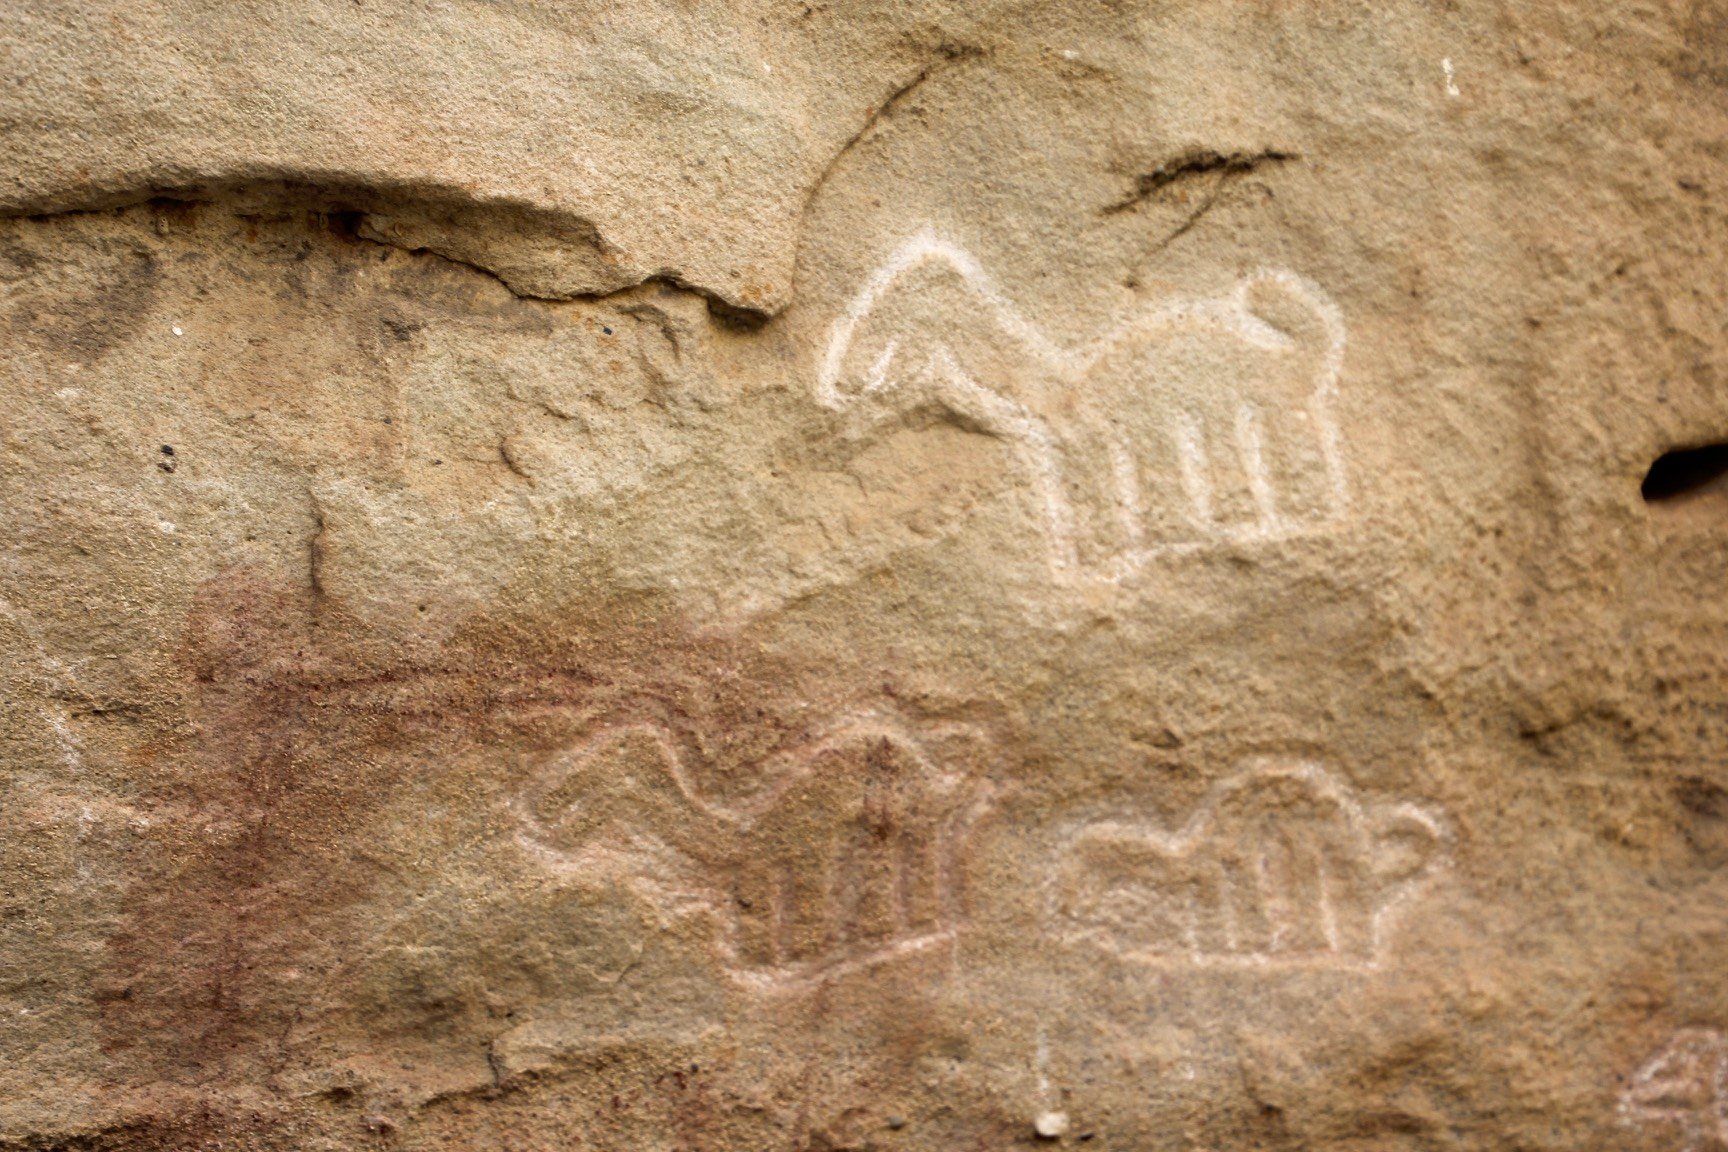 Rock art from the Bronze Age at the Pitaya petroglyphs near Chachapoyas.